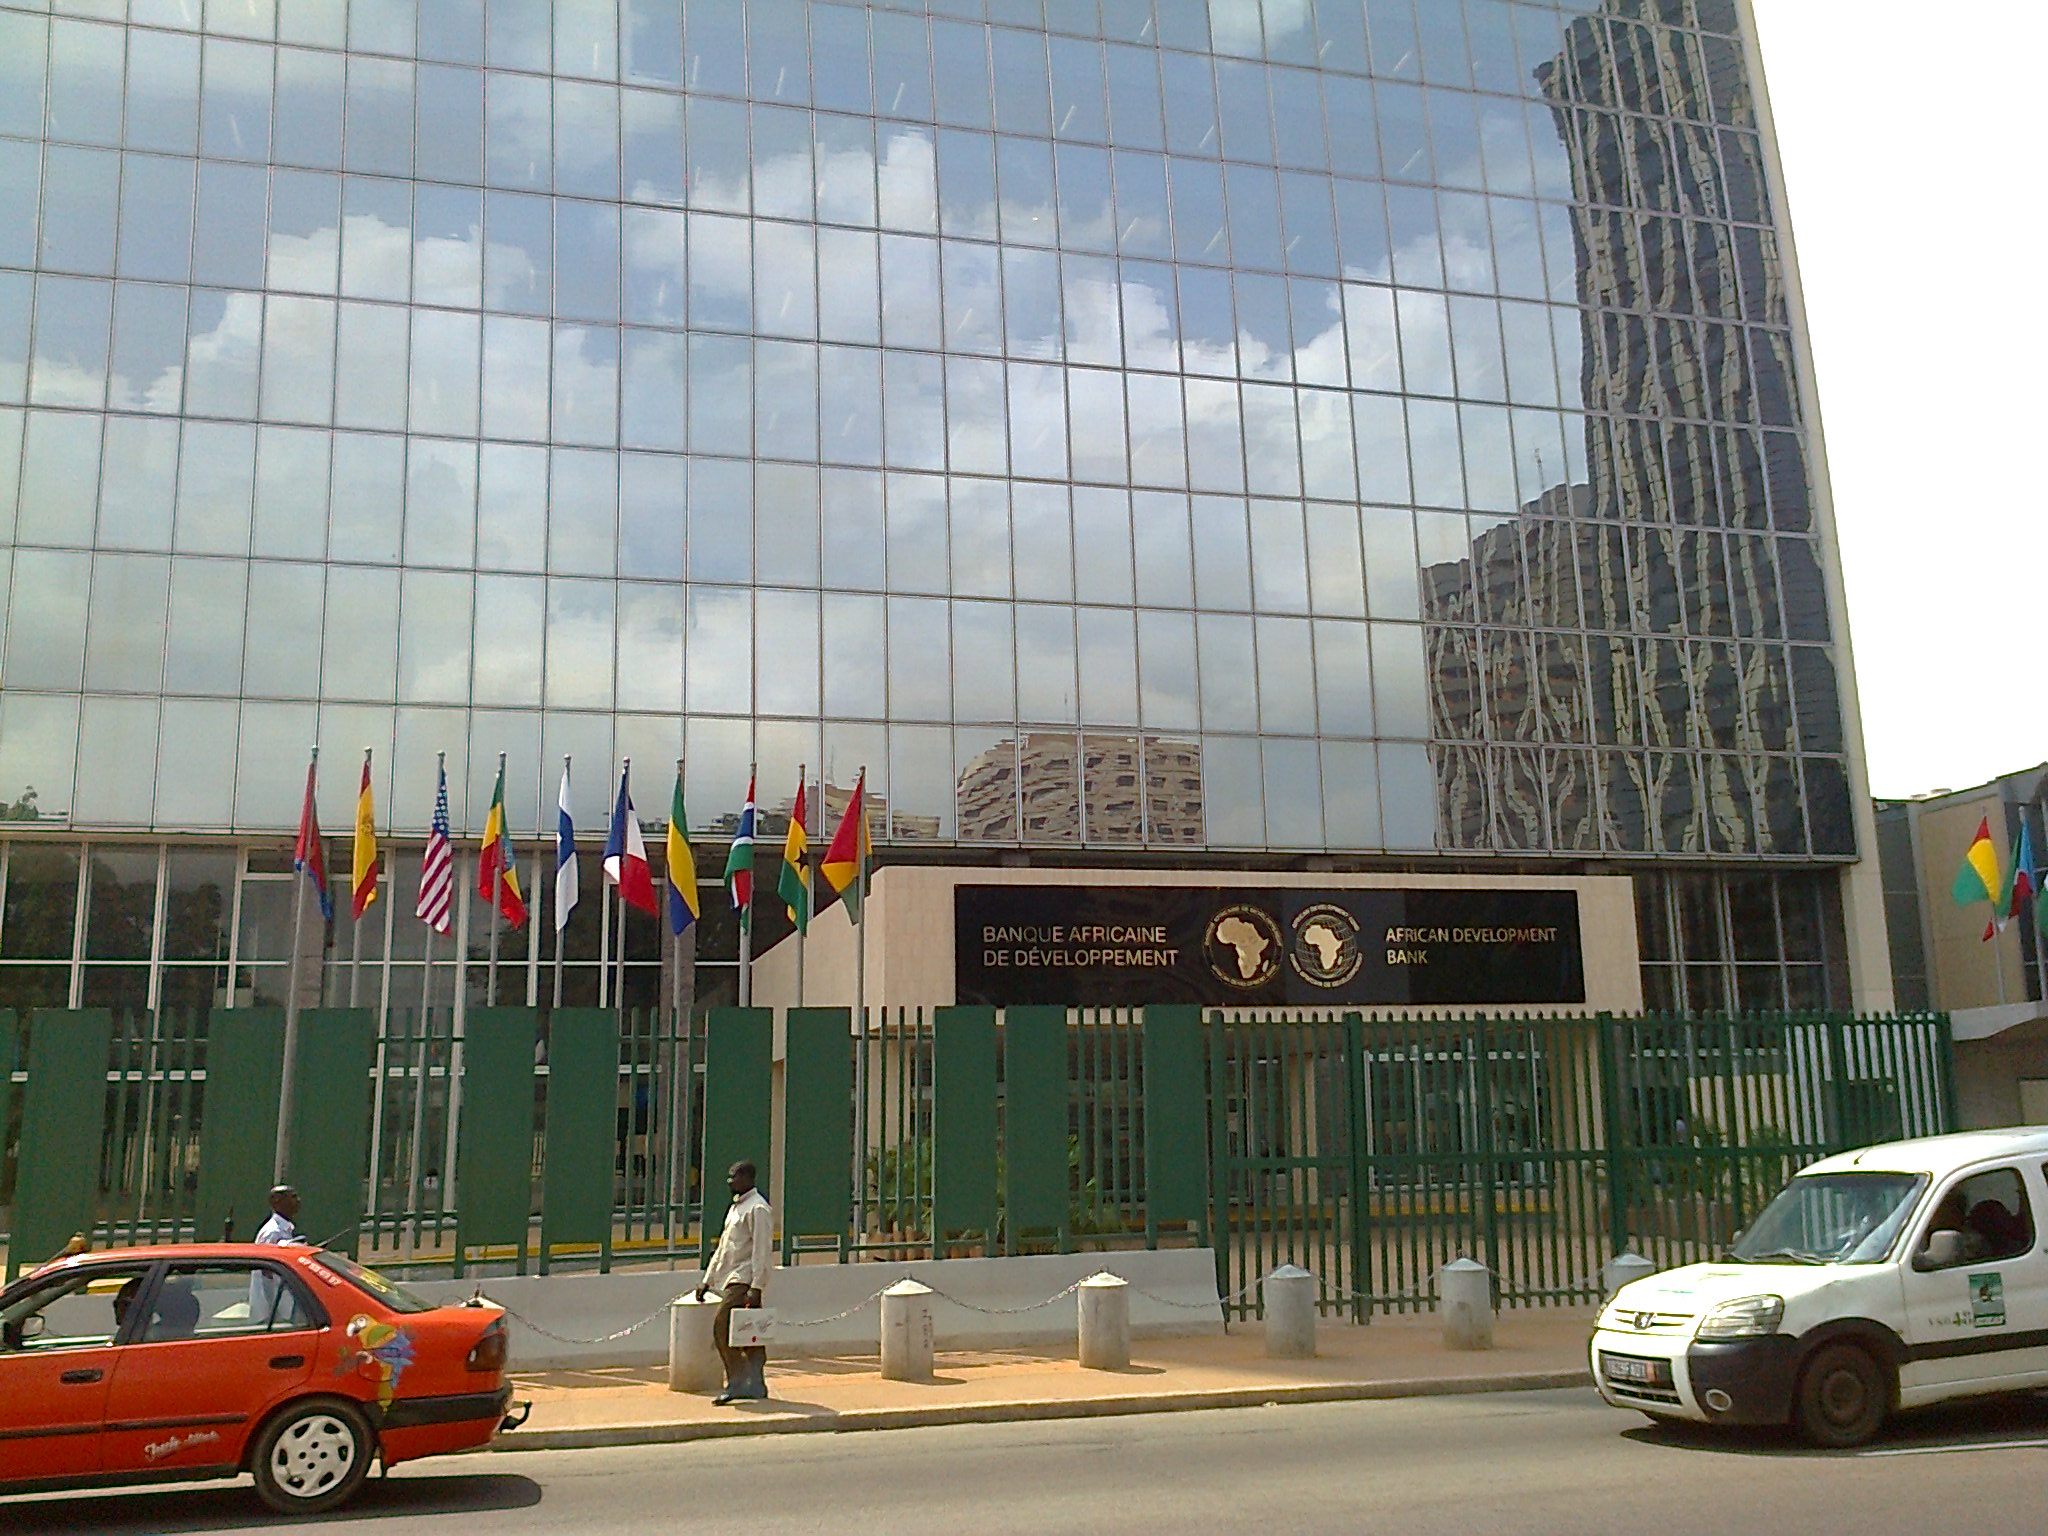 AFDB Abidjan. Crédits photo : DR